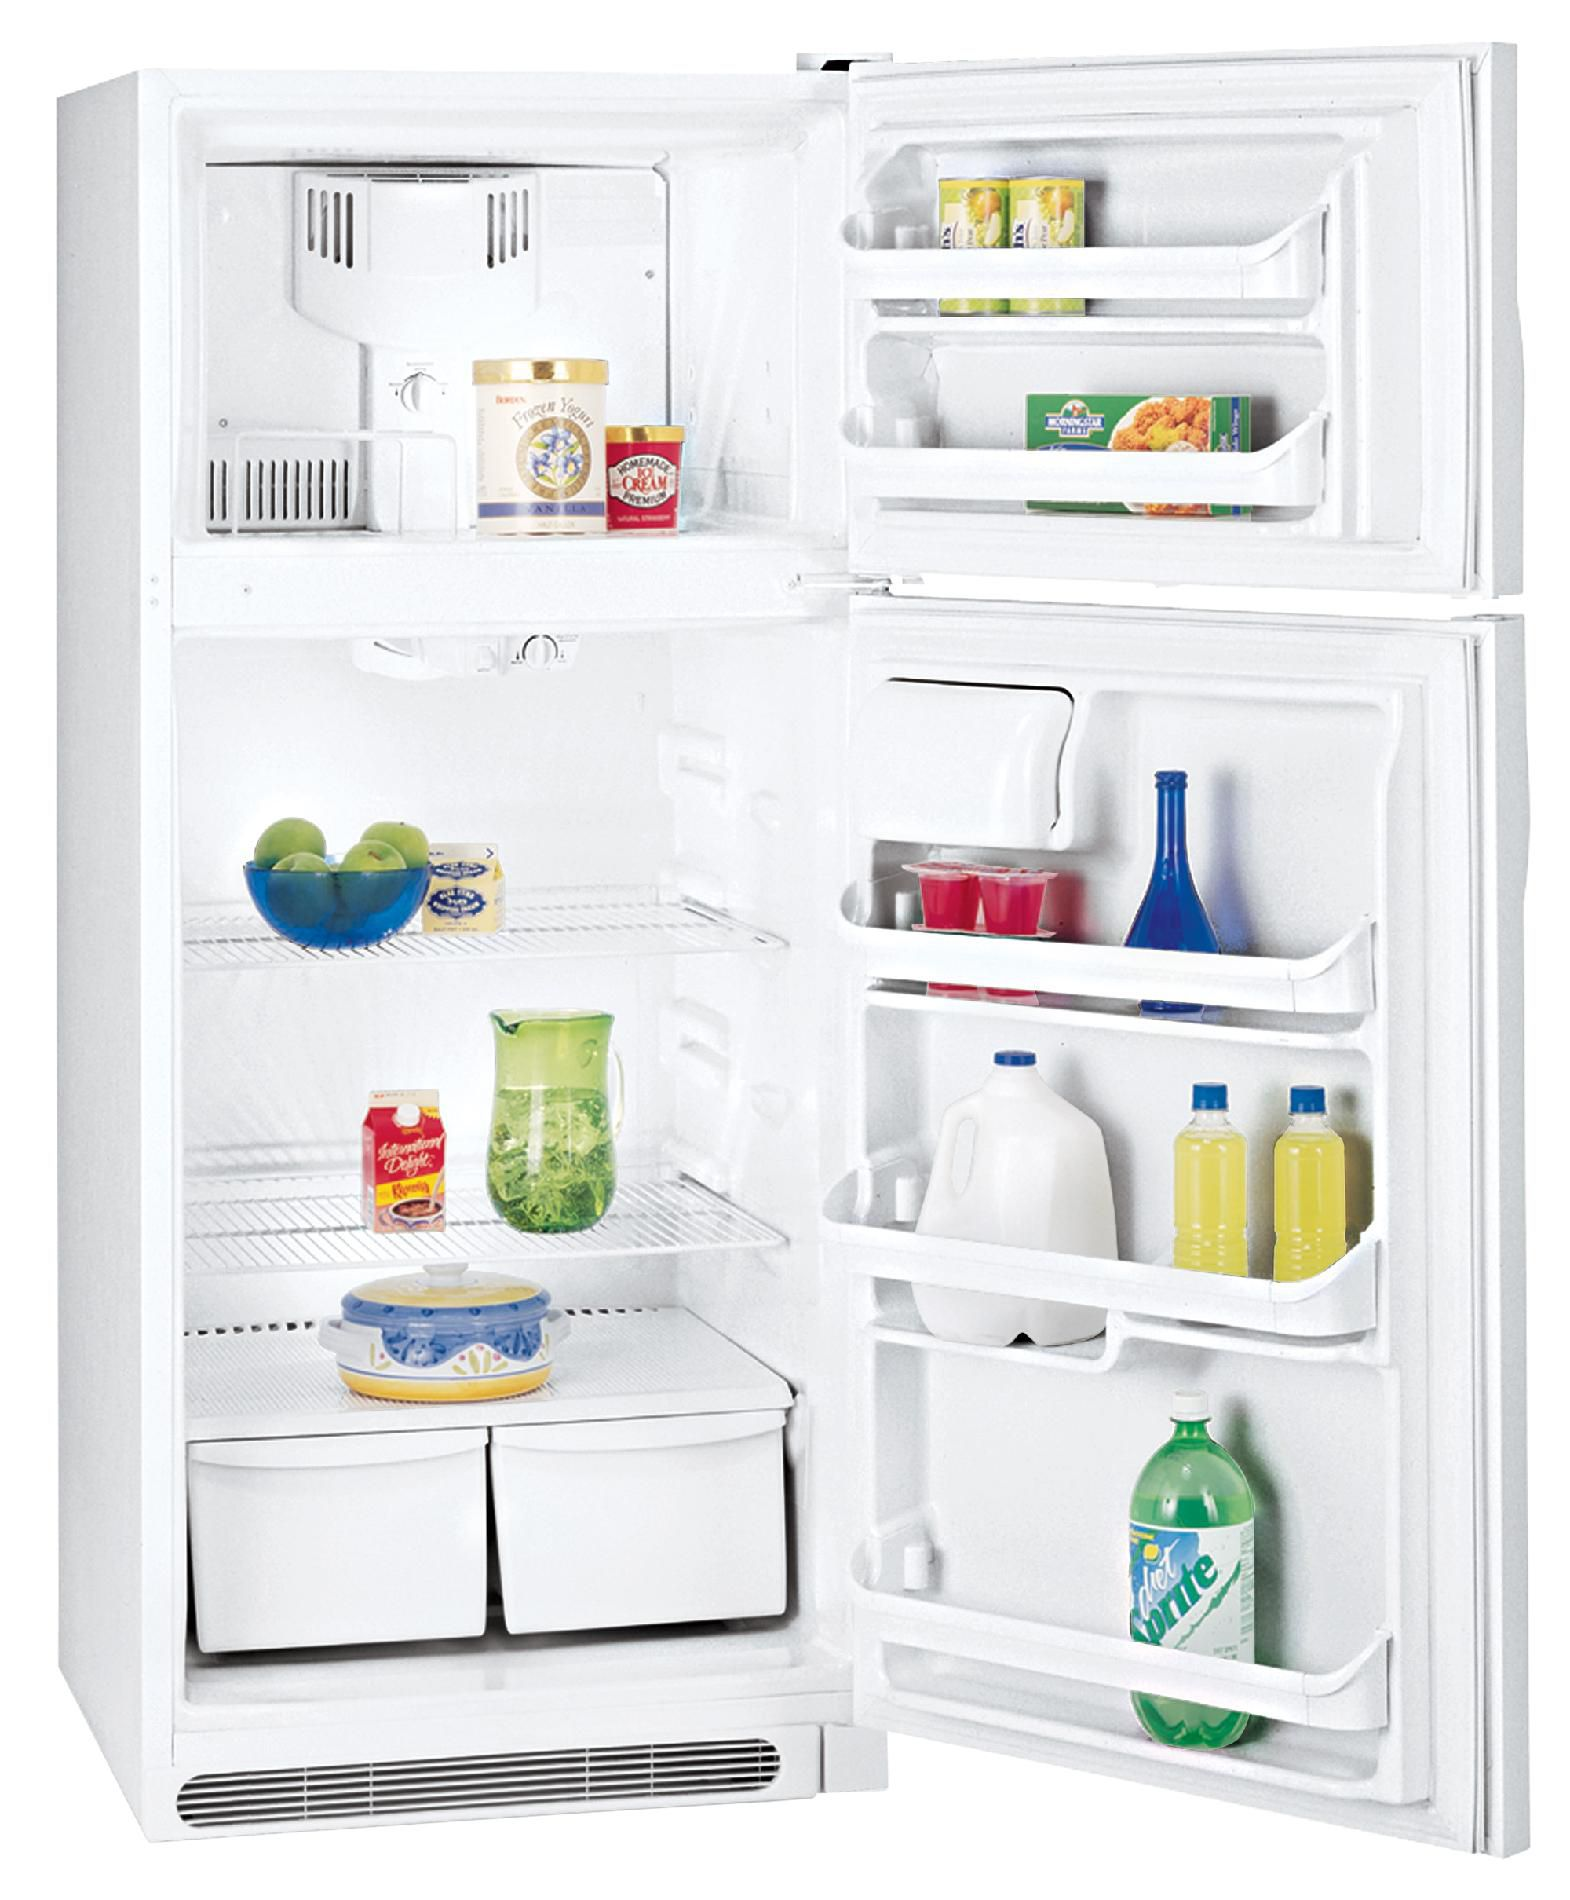 Kenmore 16.5 cu. ft. Top-Freezer Refrigerator, Non-Ice